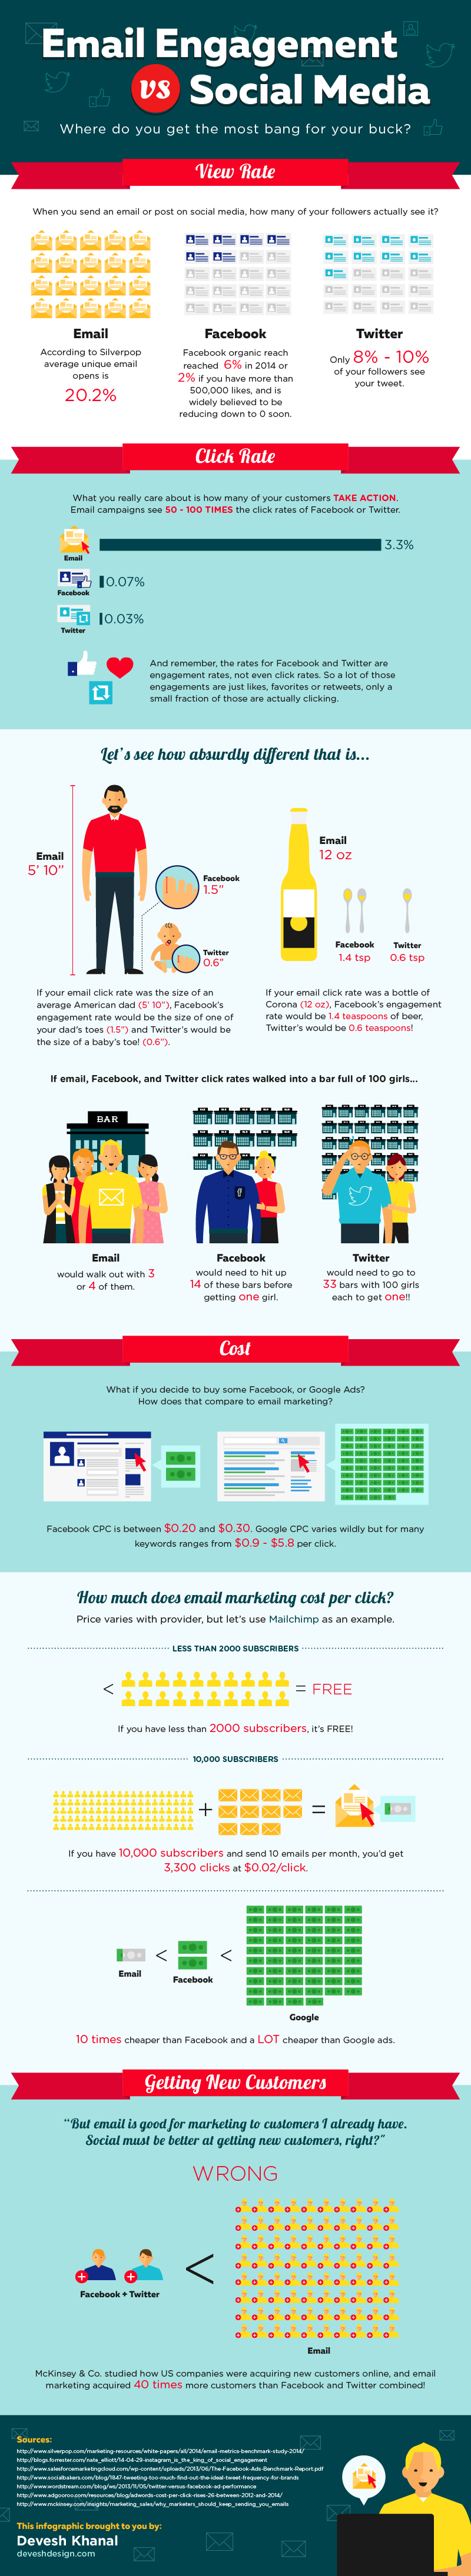 Email Marketing vs Social Media - the Pros and Cons Email Marketing  email2705